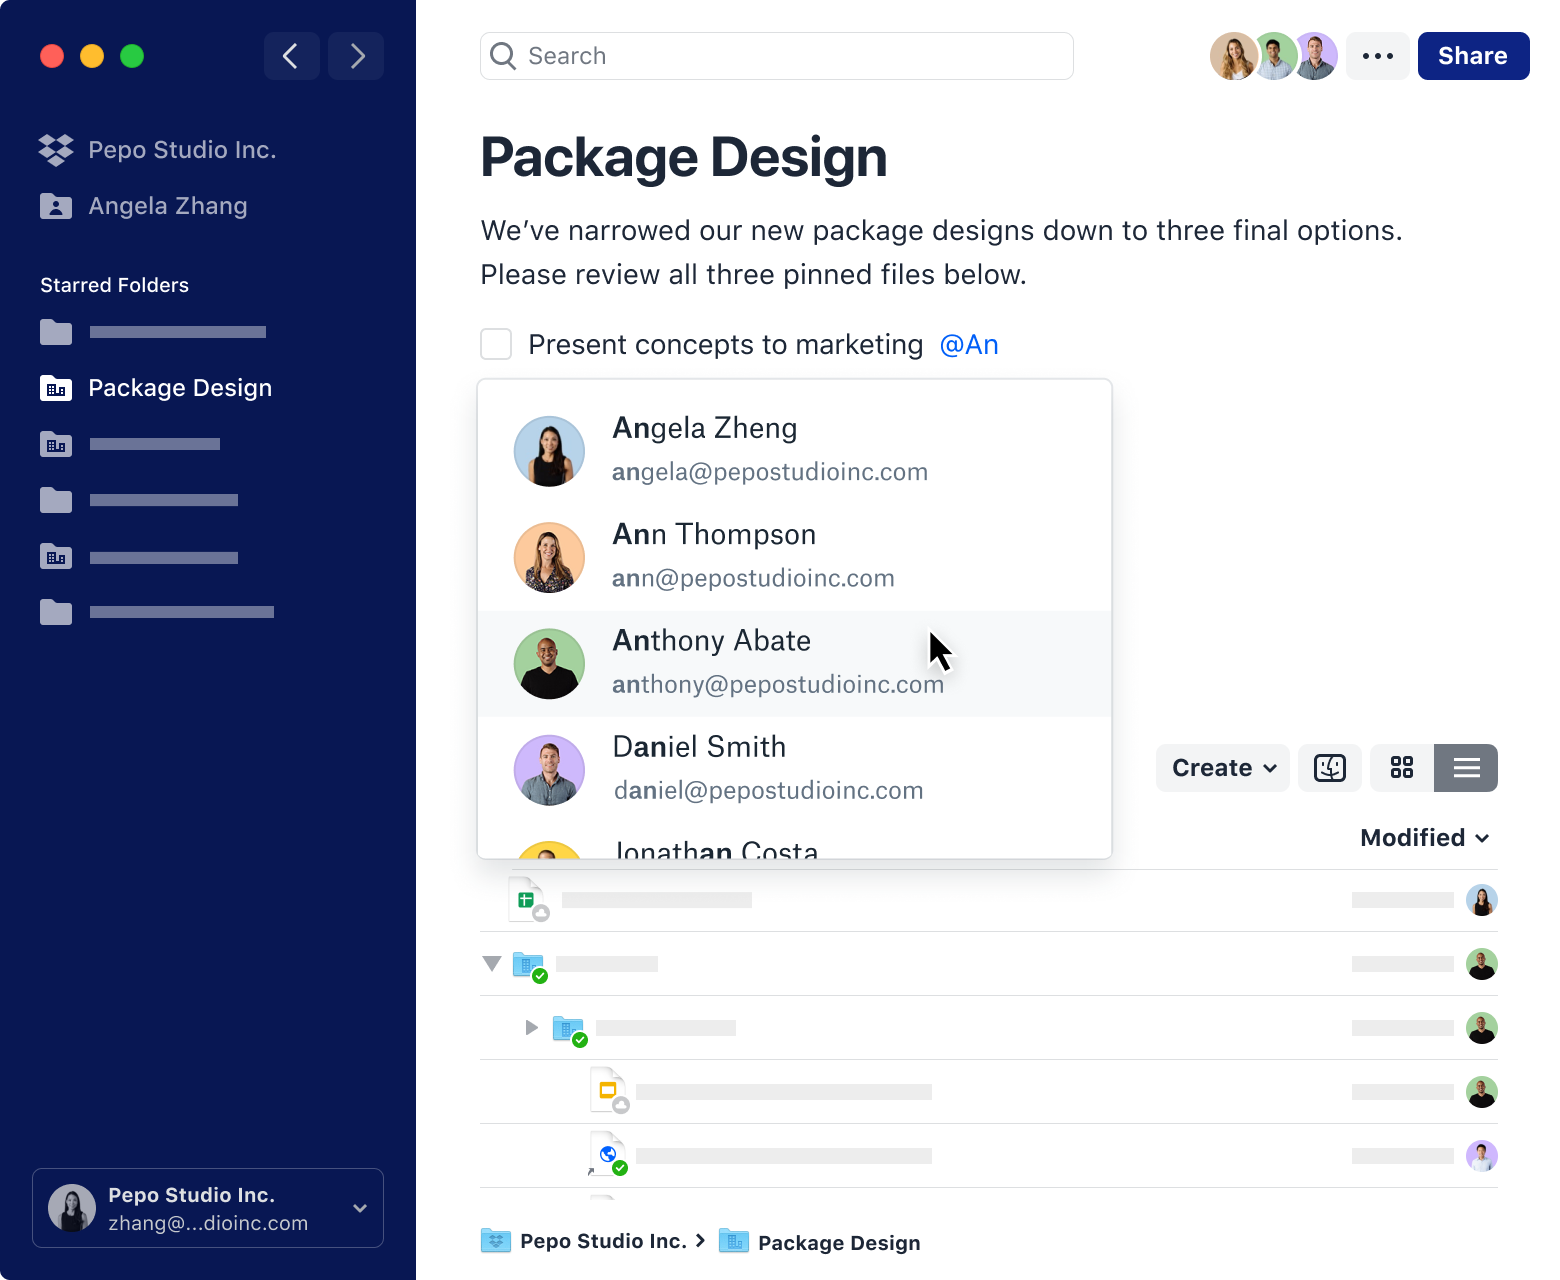 Dropbox relaunches with new user experience, apps and integrations